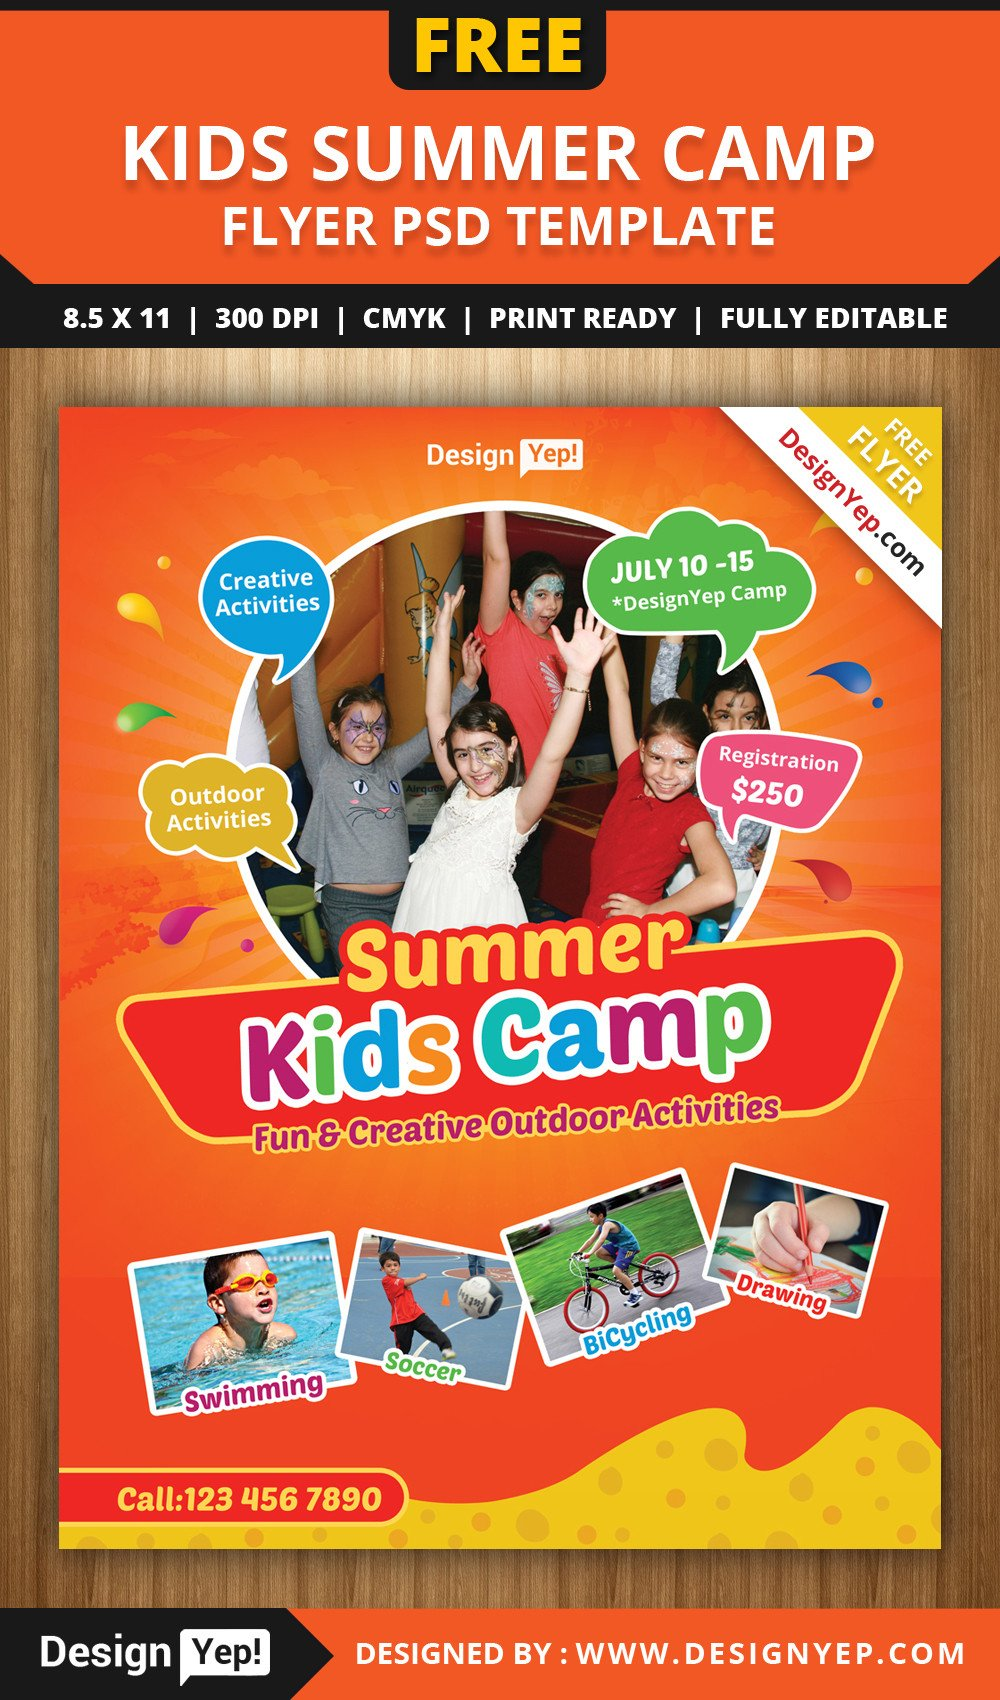 Summer Camp Flyer Template Free Kids Summer Camp Flyer Psd Template On Behance